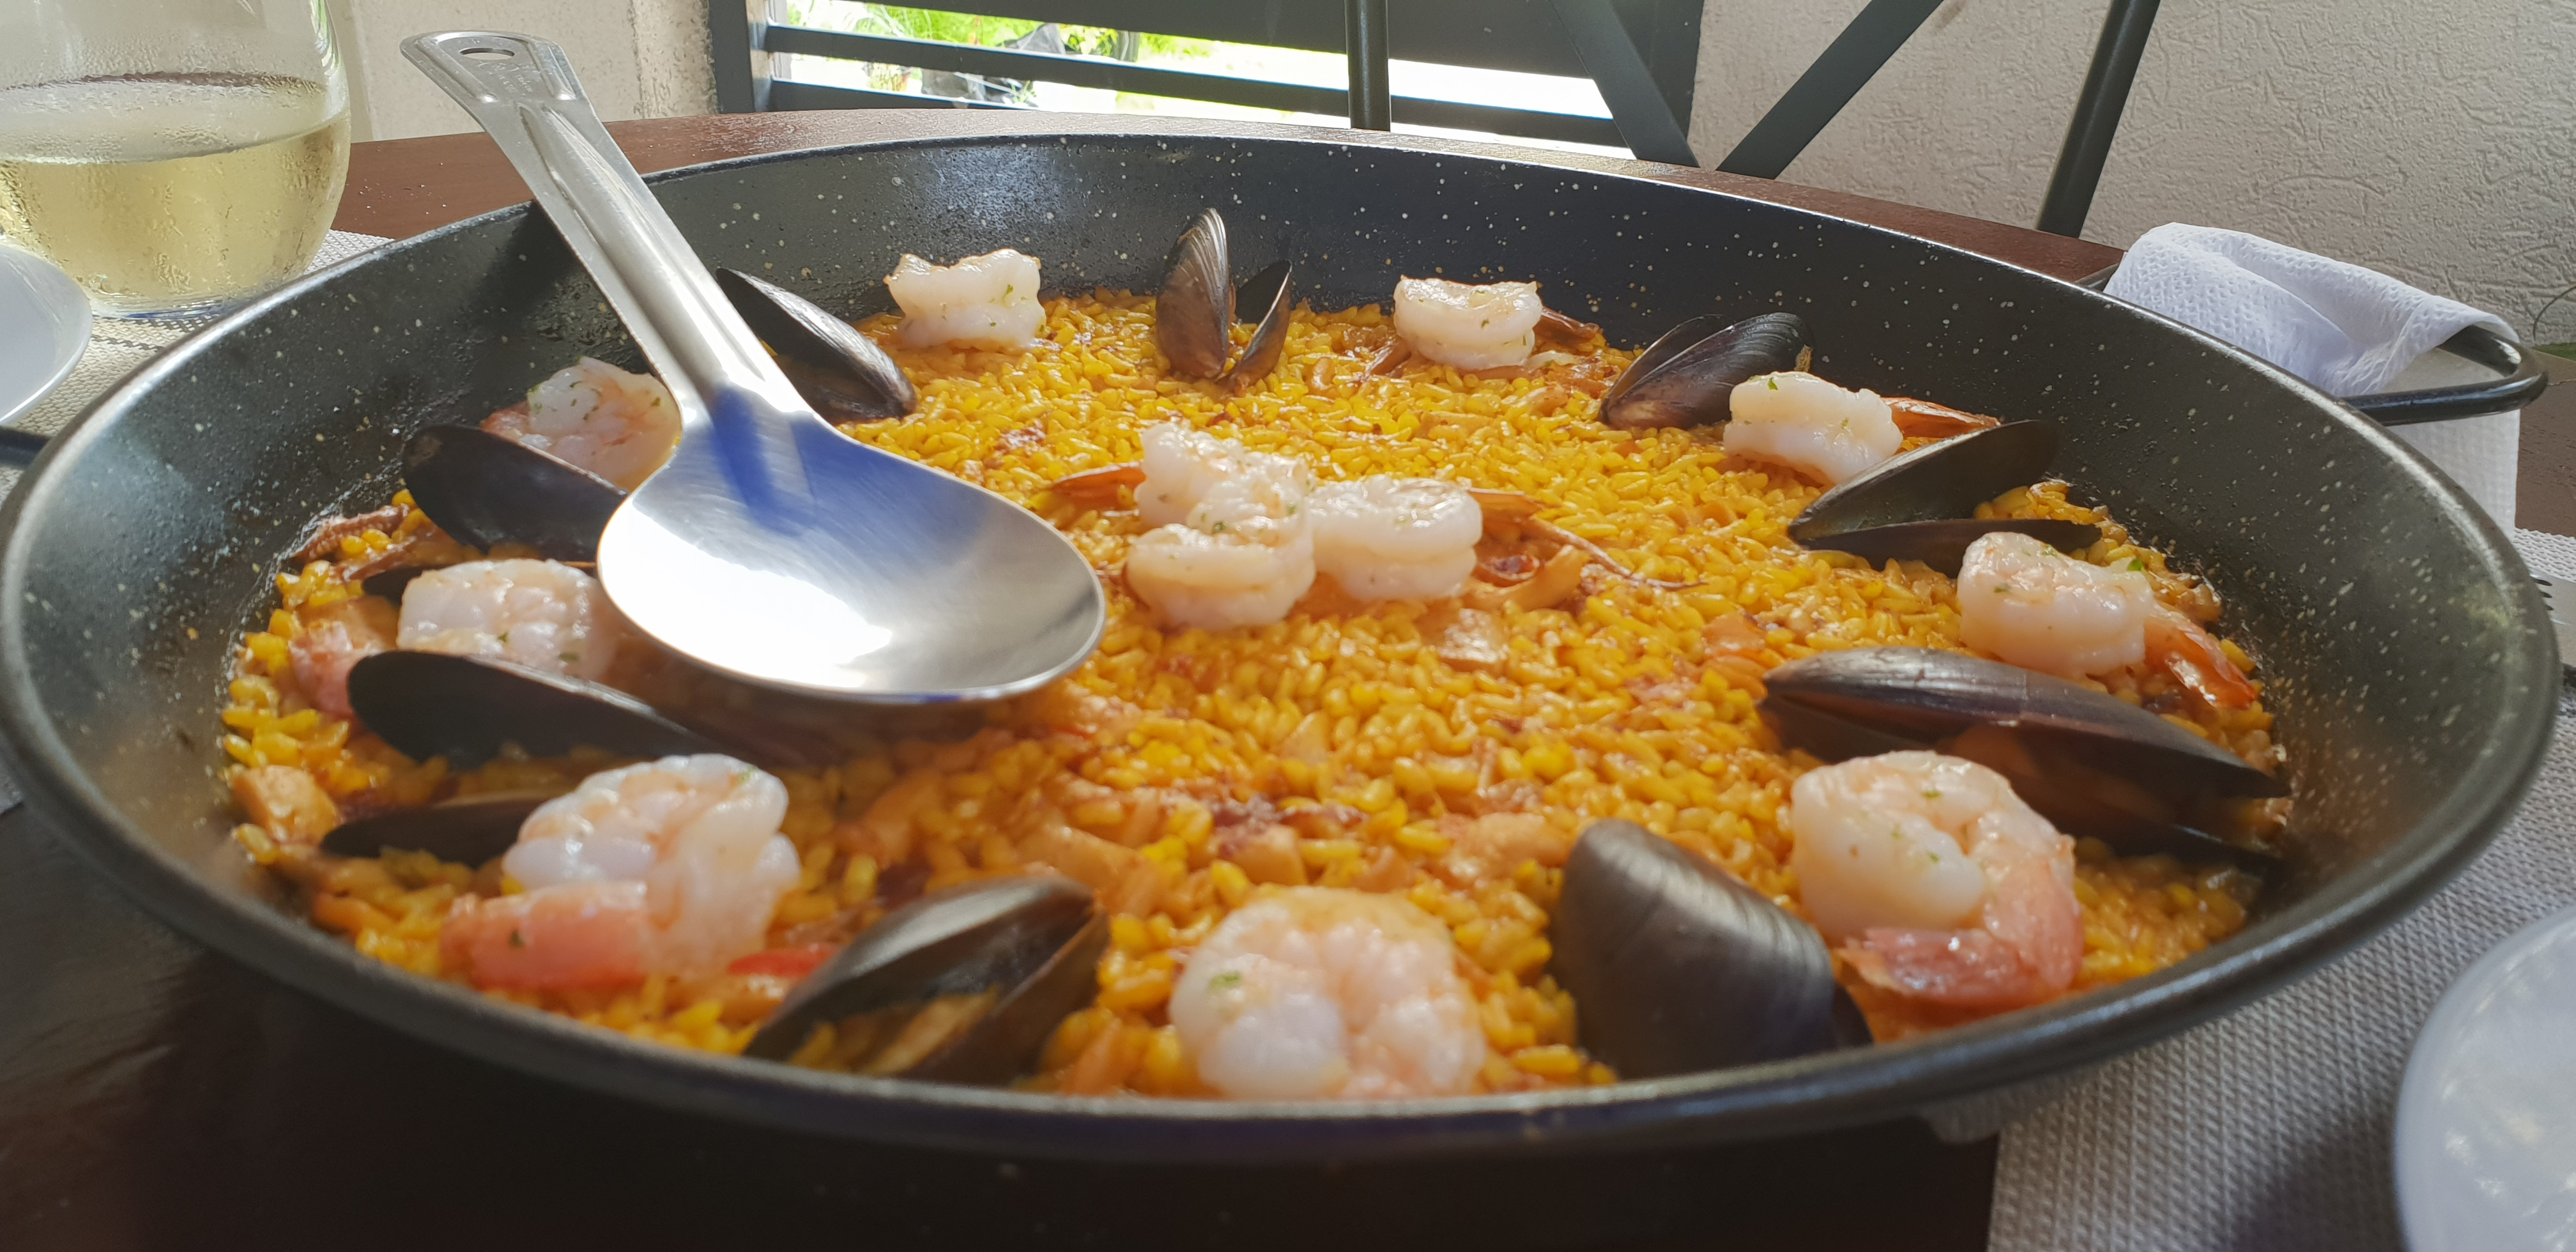 Seafood Paella ($2950JMD) with King Prawns, Squid, Mussels and Rice.